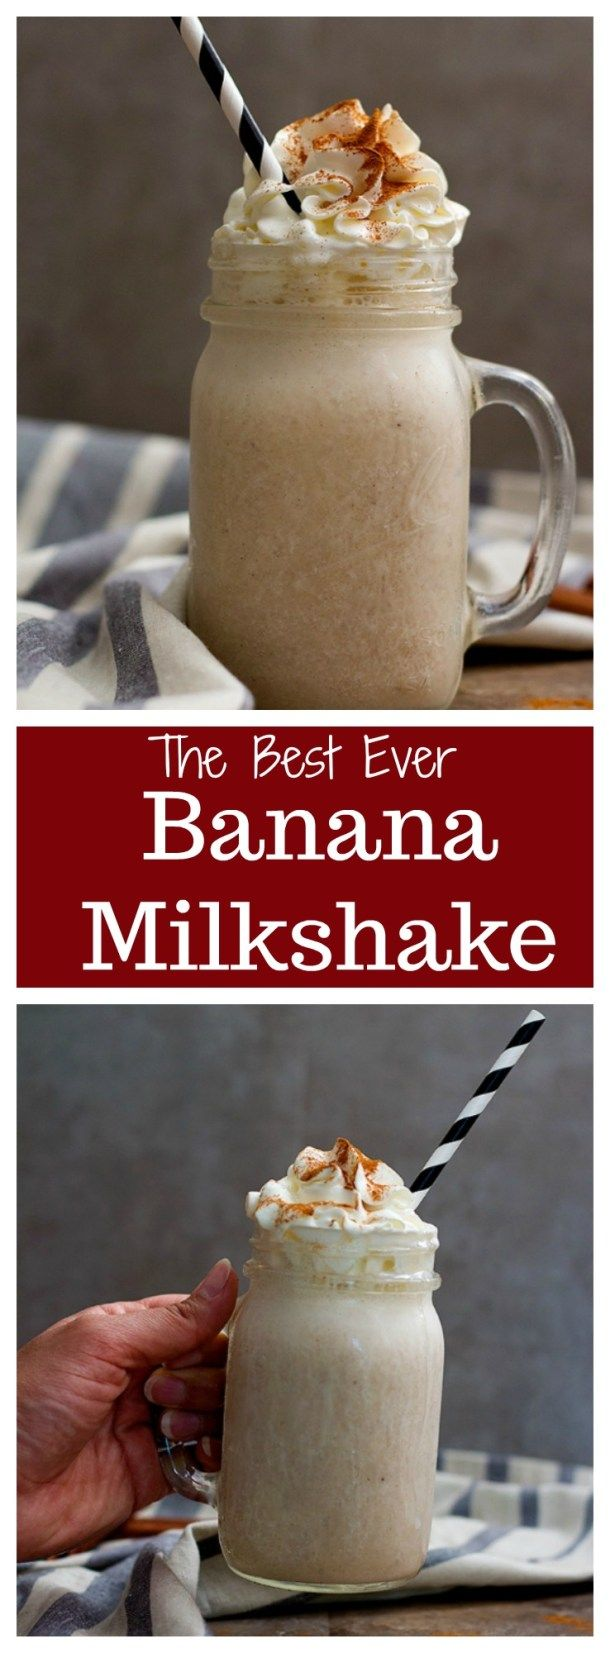 banana milkshake | milkshake recipe | banana recipes | summer drinks | summer re…